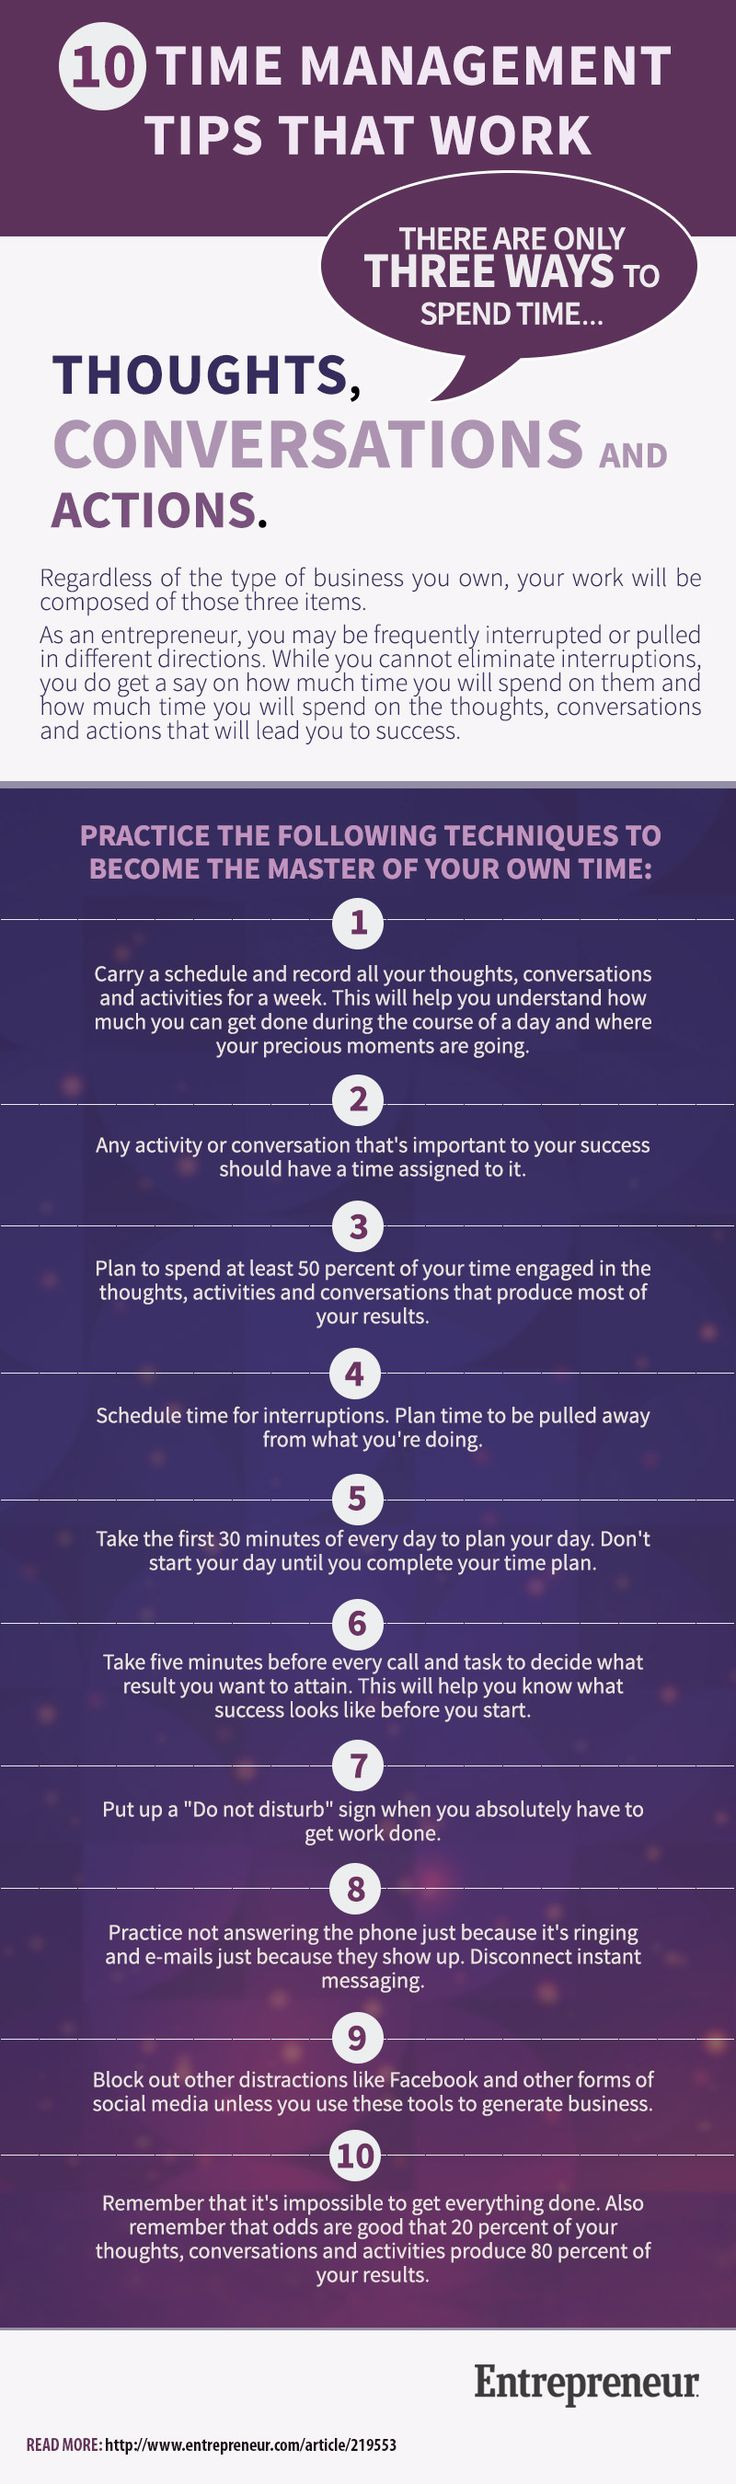 best ideas about time management time management how to manage time 10 tips that work